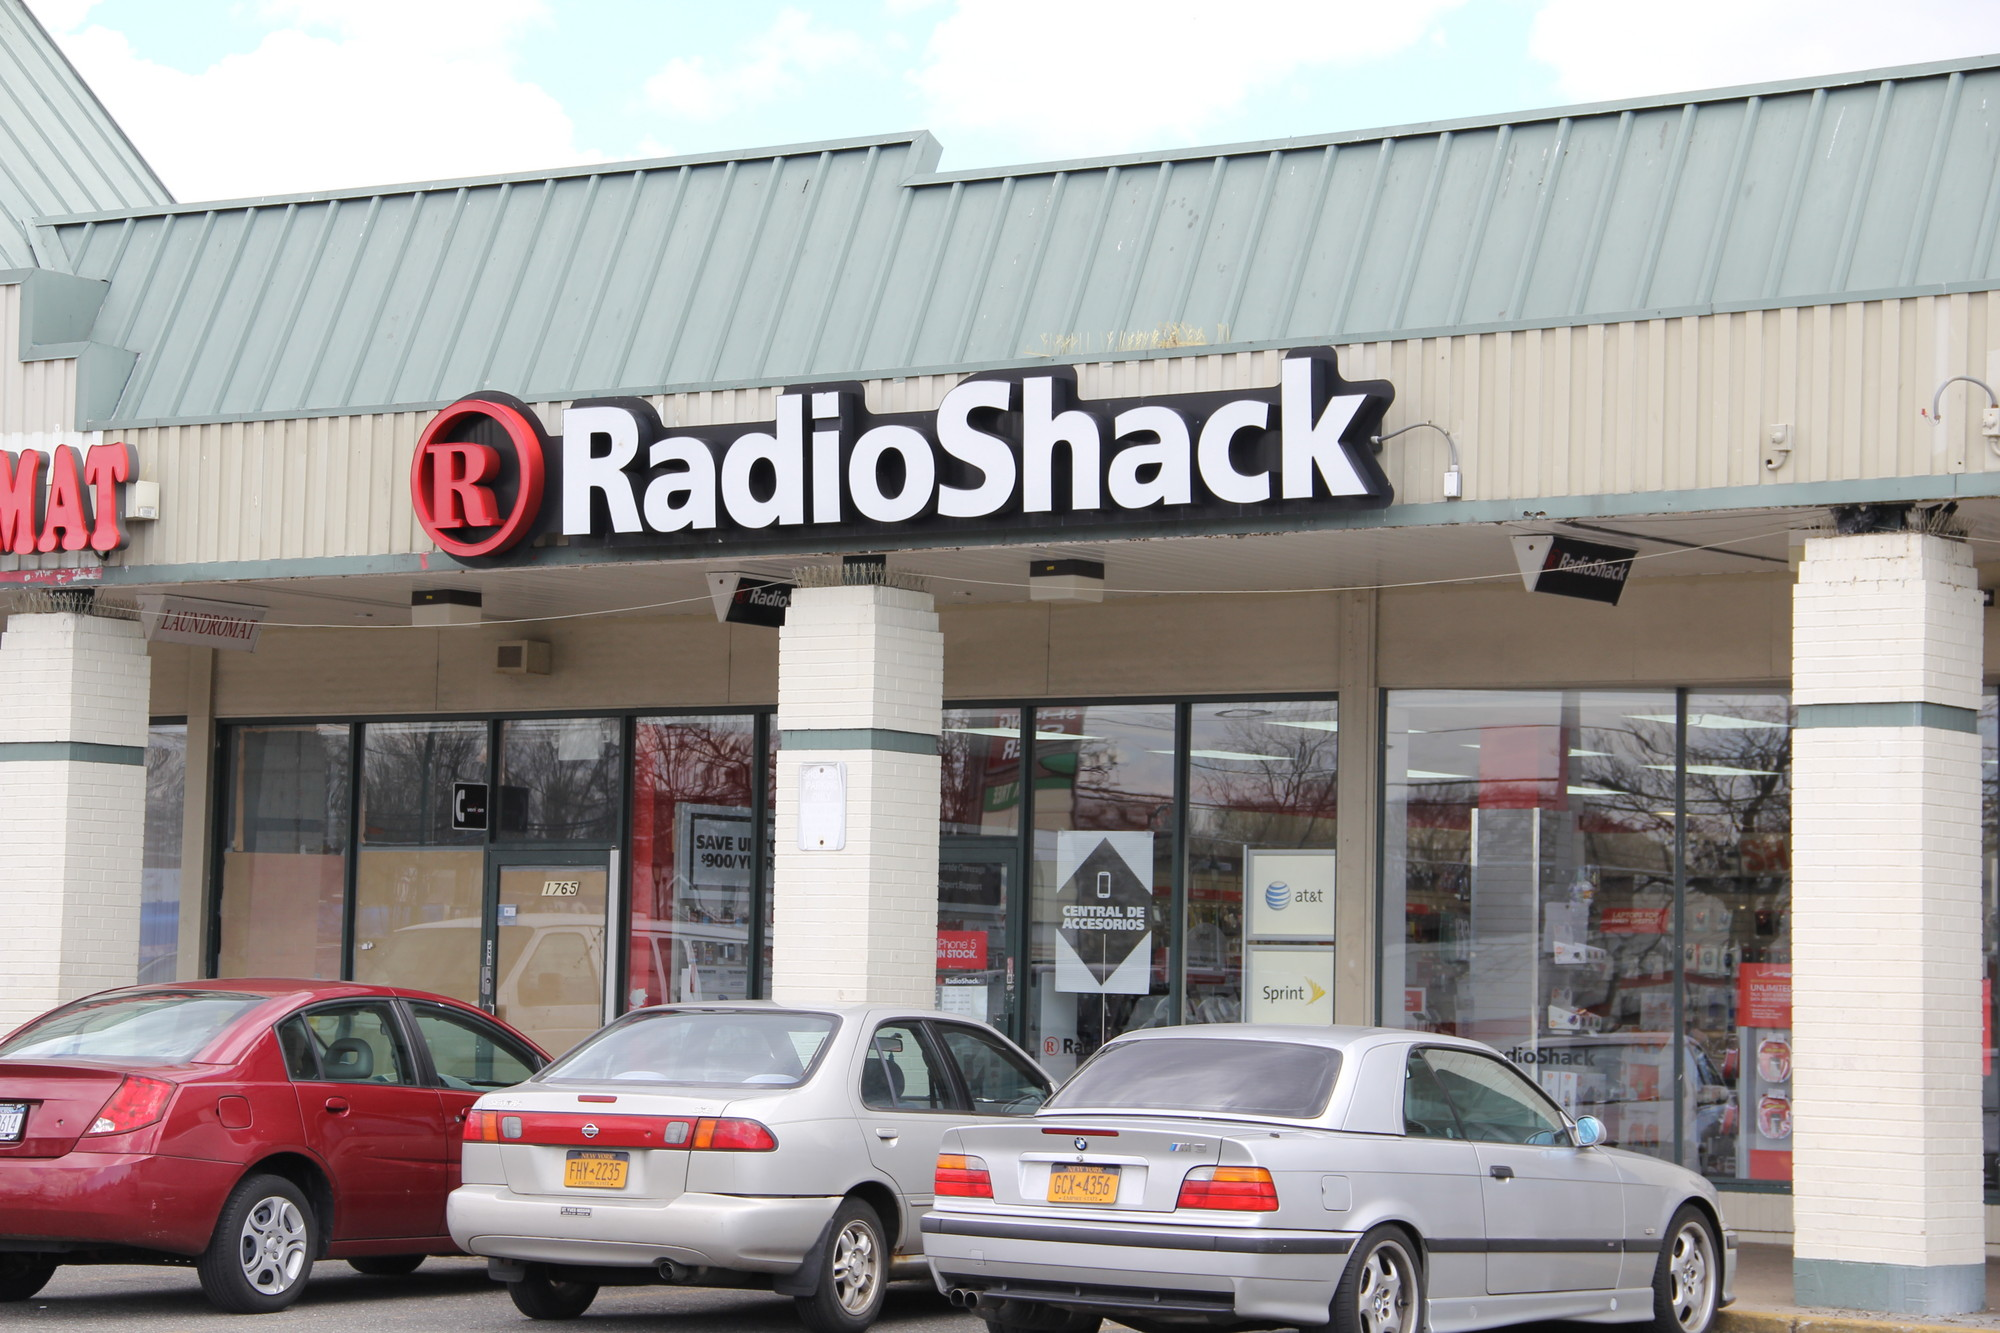 The lone clerk at this Radio Shack was tied up during a robbery last May.